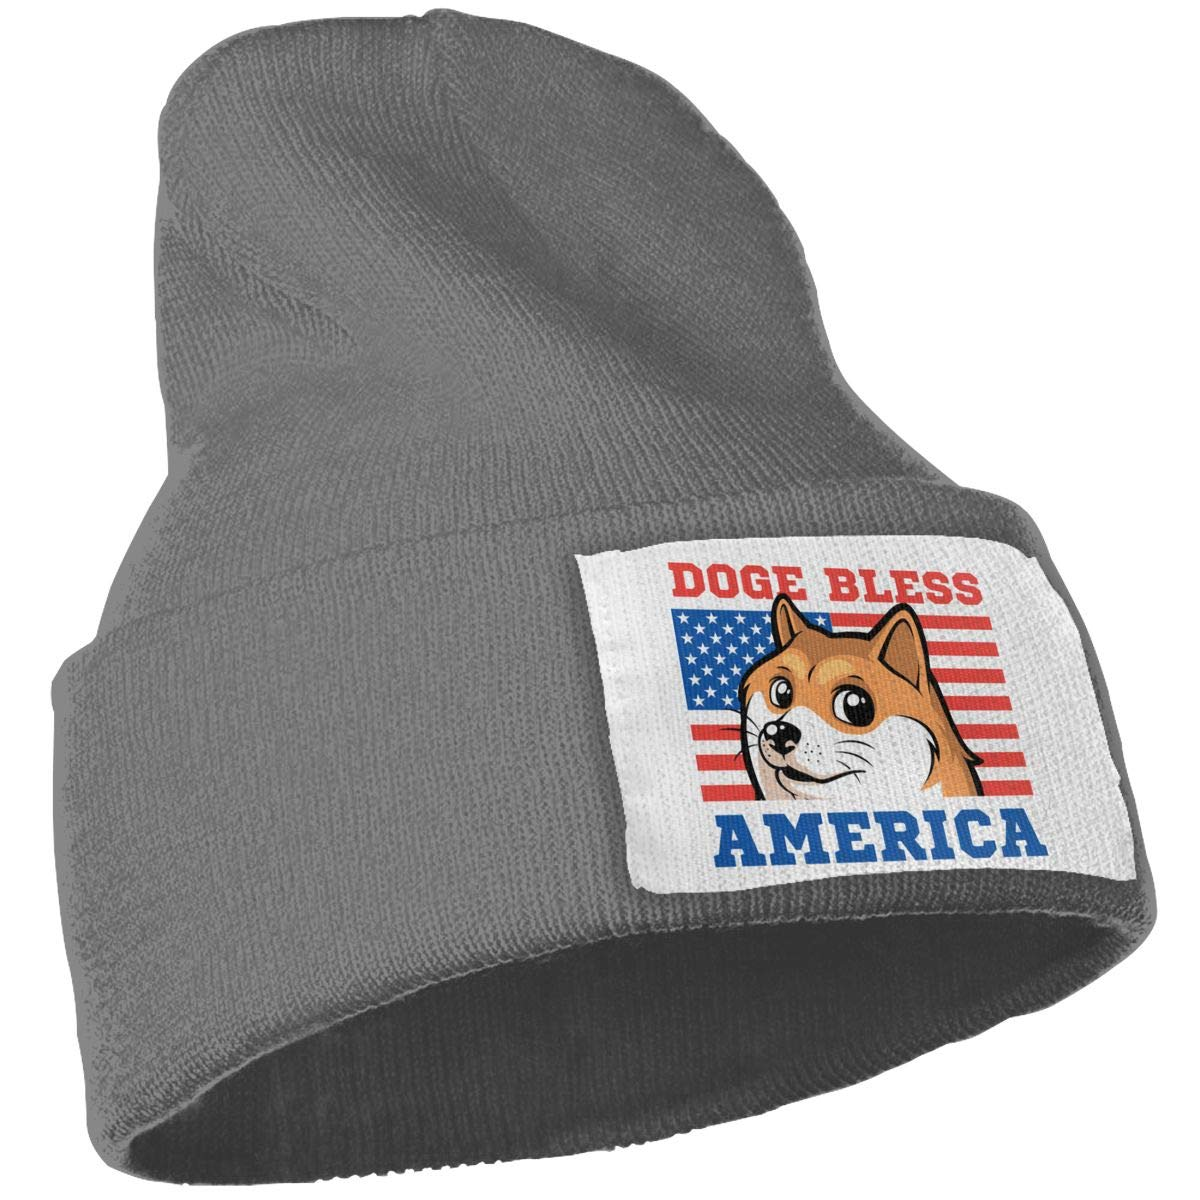 Unisex Winter Hats Doge Bless America Flag Skull Caps Knit Hat Cap Beanie Cap for Men//Womens